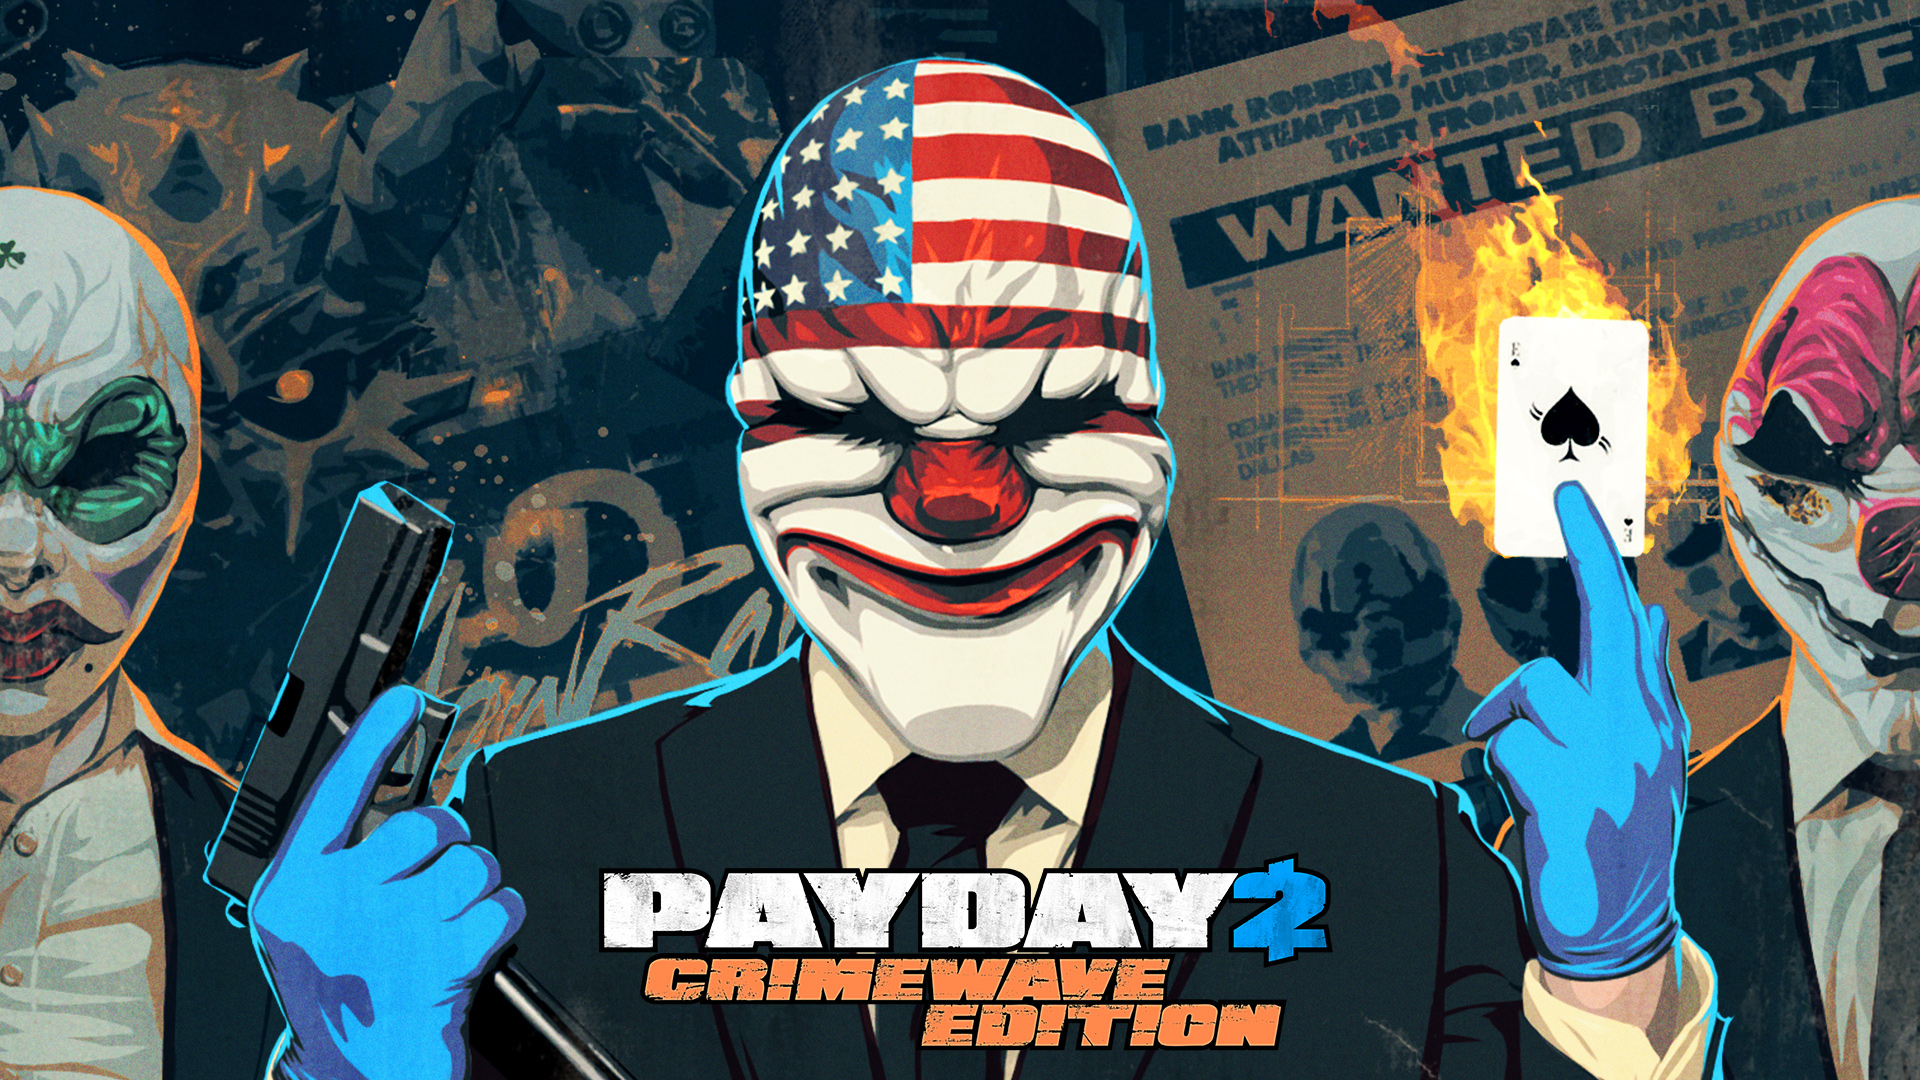 PAYDAY 2: Crimewave Edition coming to Xbox One and